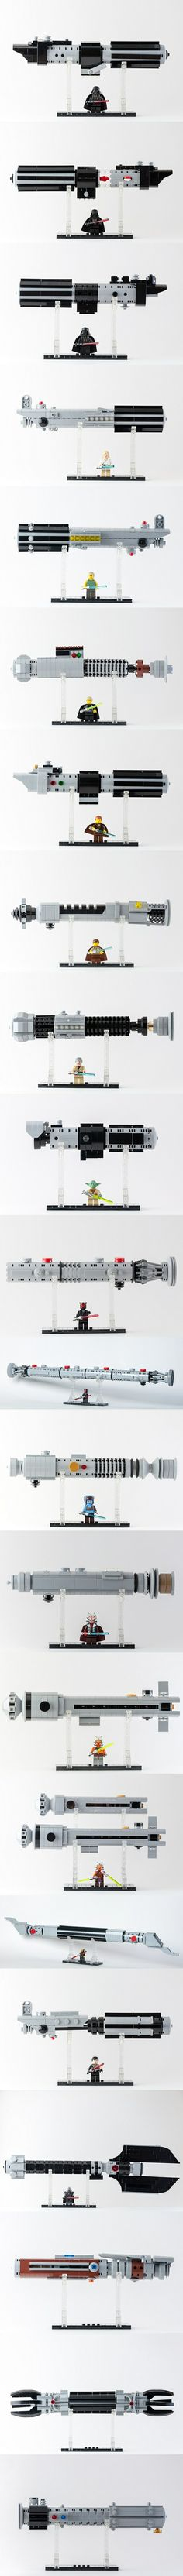 LEGO Star Wars Light